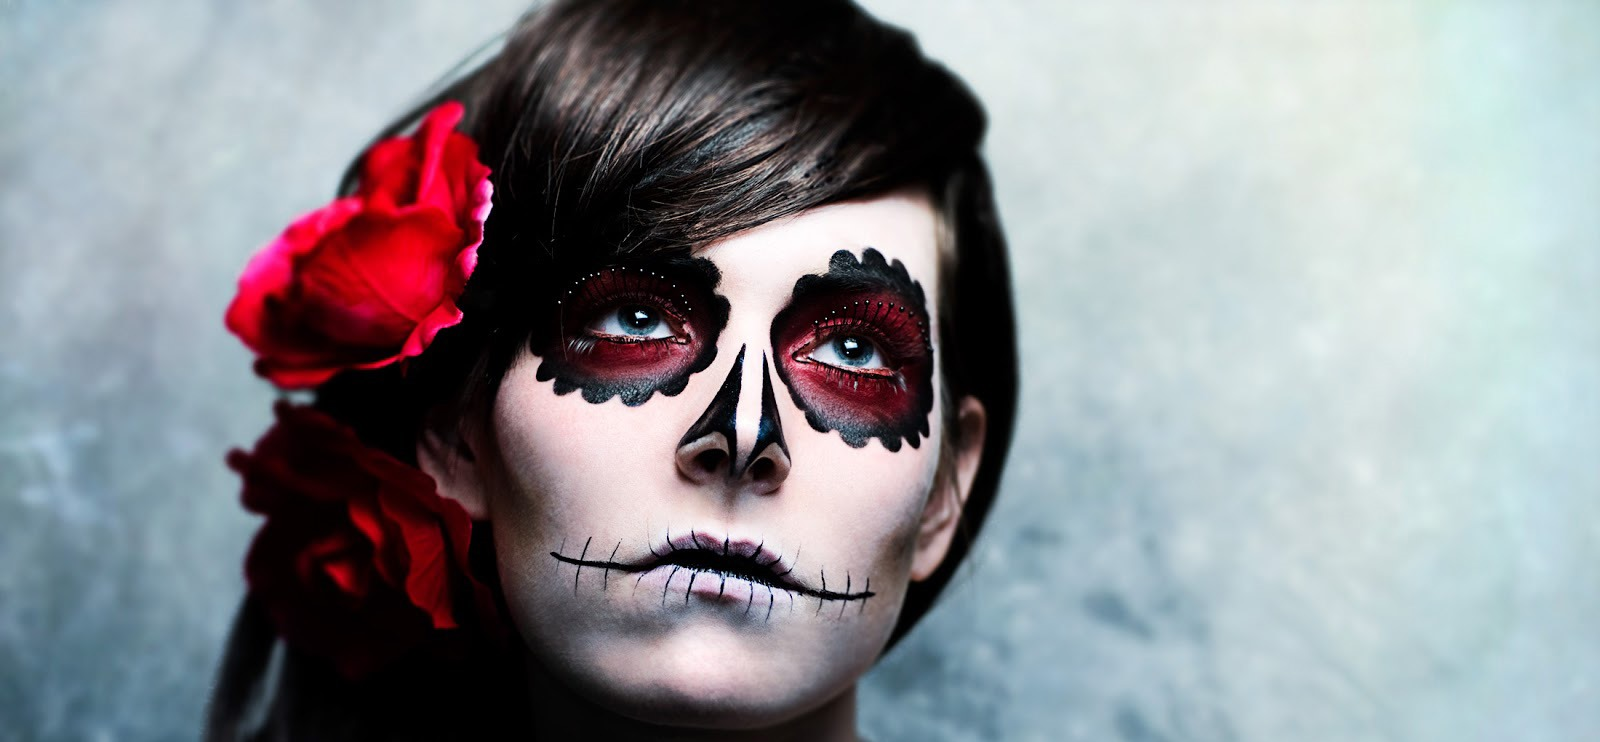 Awesome Halloween and Horror Makeup Girly Design Blog - Amazing Halloween Makeup